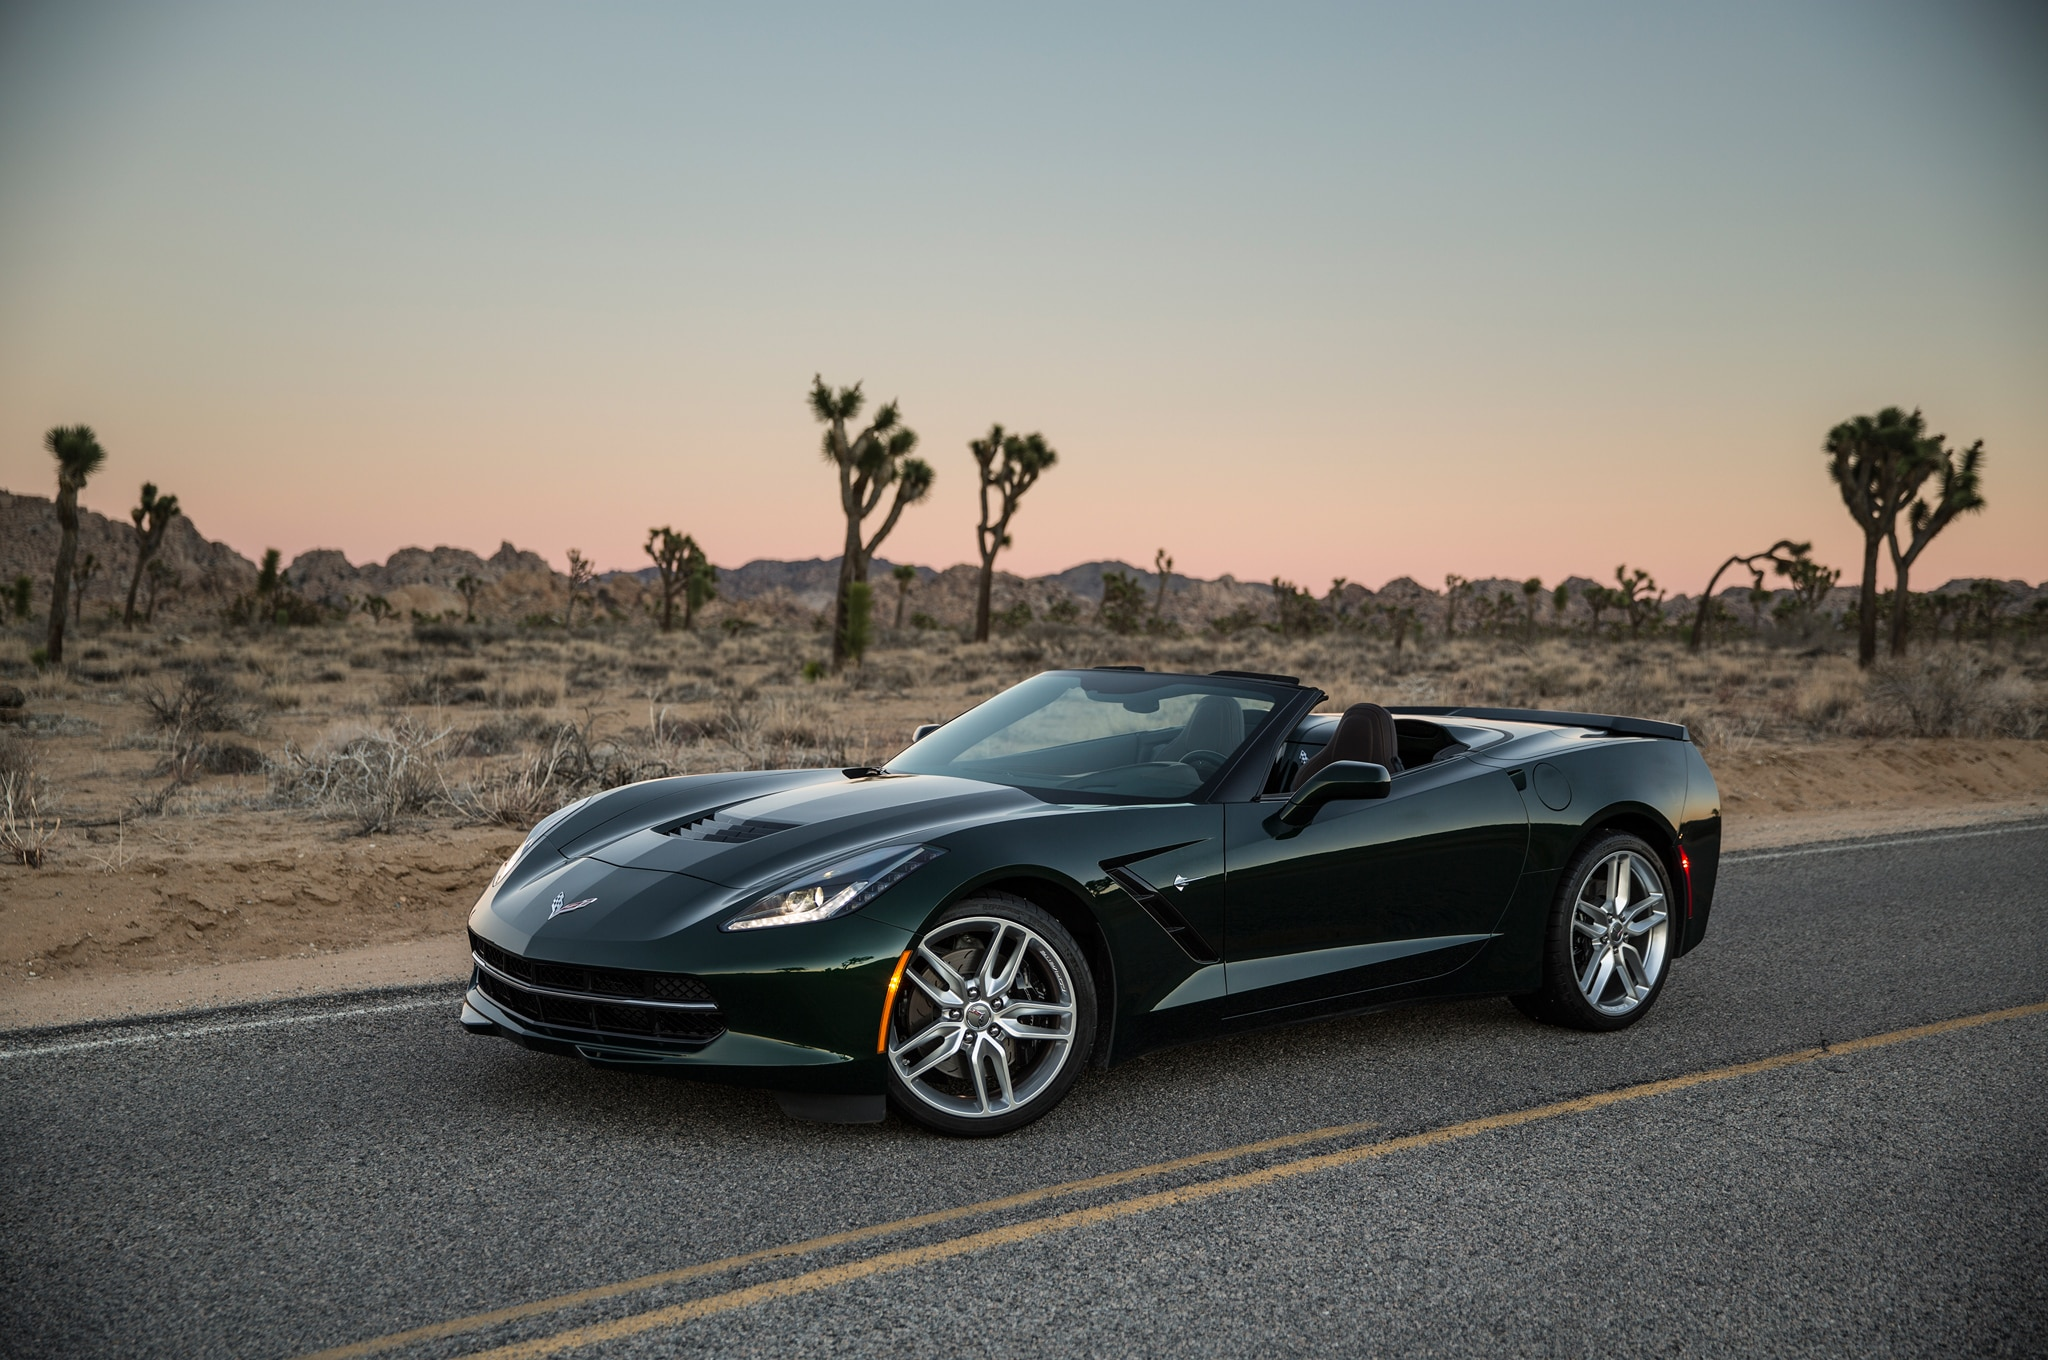 Chevrolet corvette c2 sting ray reviews prices ratings with - Older